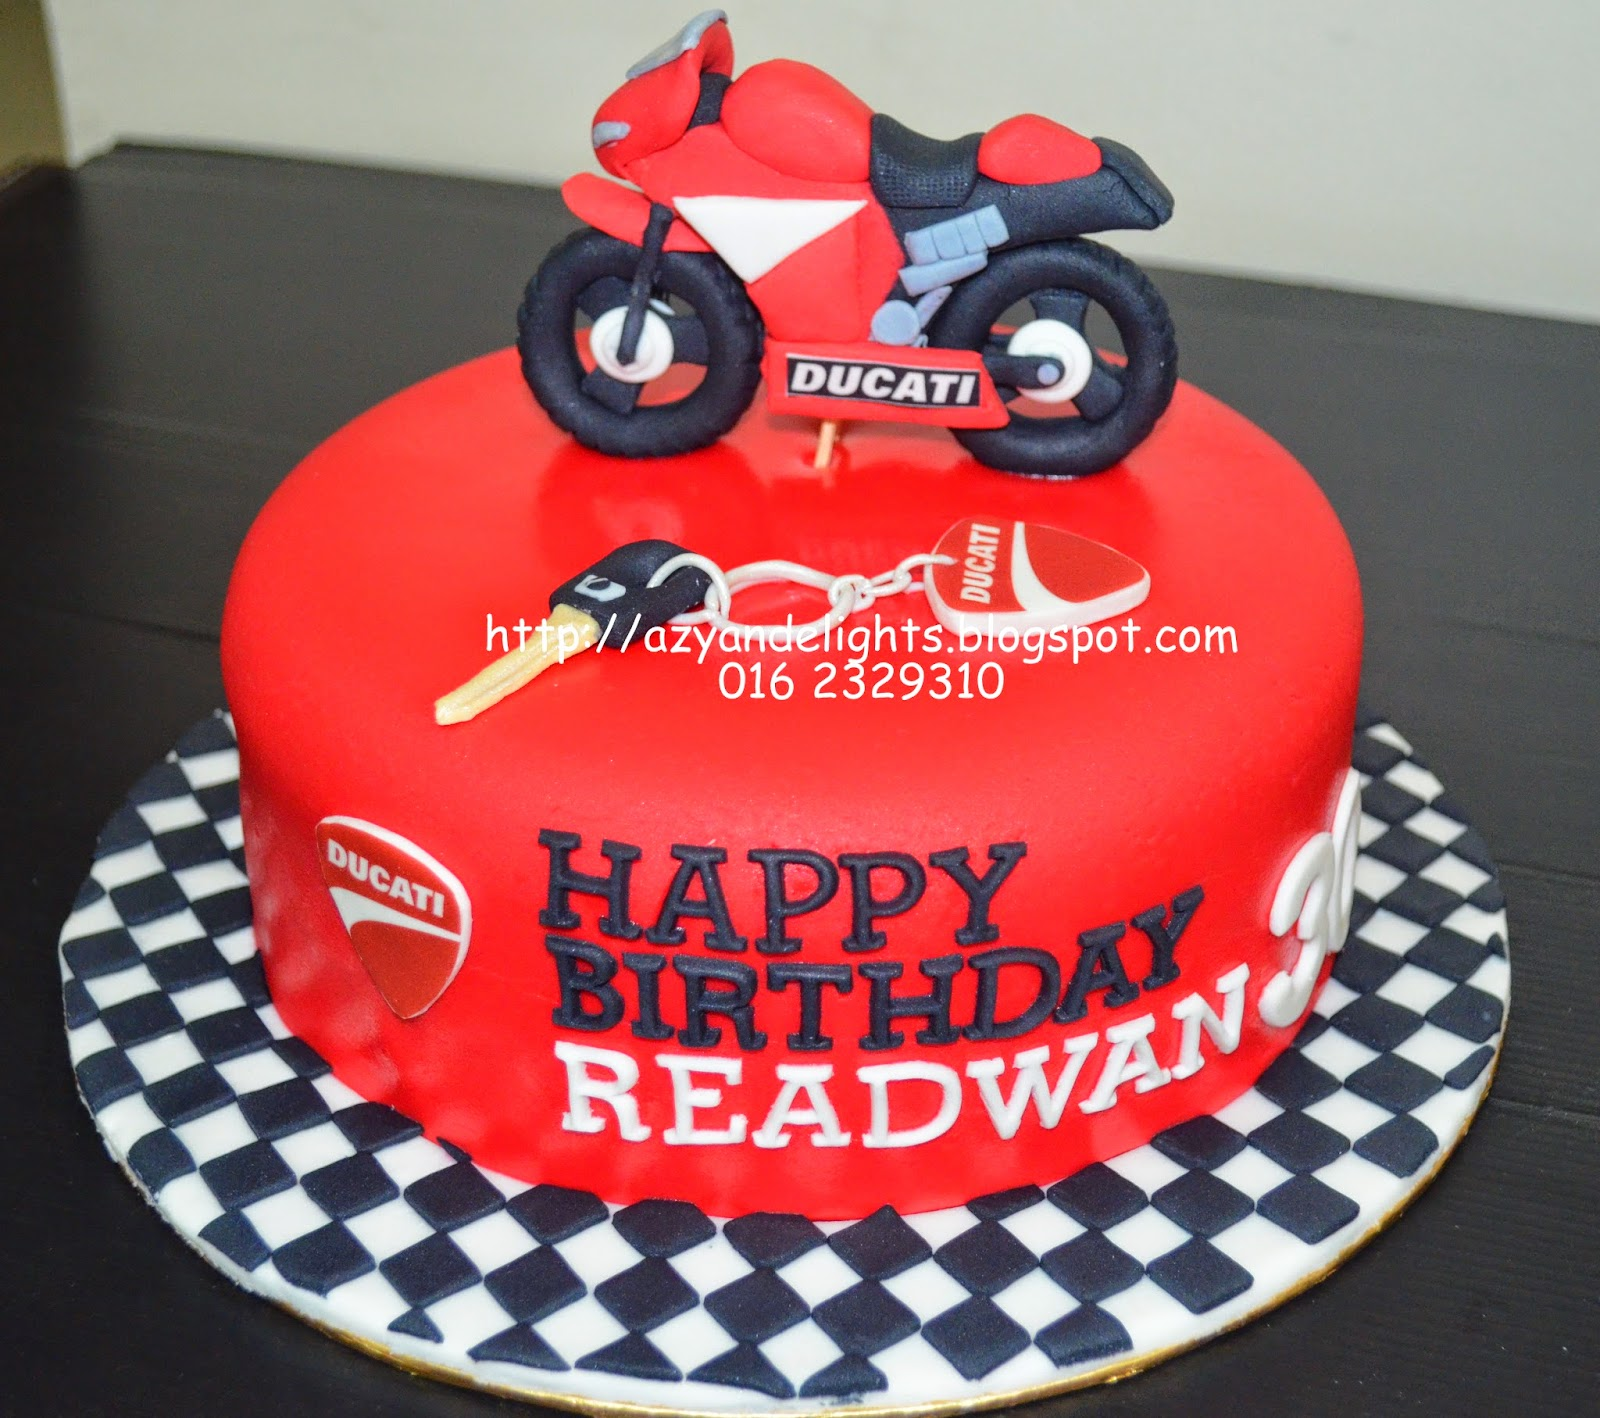 Cake Design For Matriculation : Azyandelights: April 2015